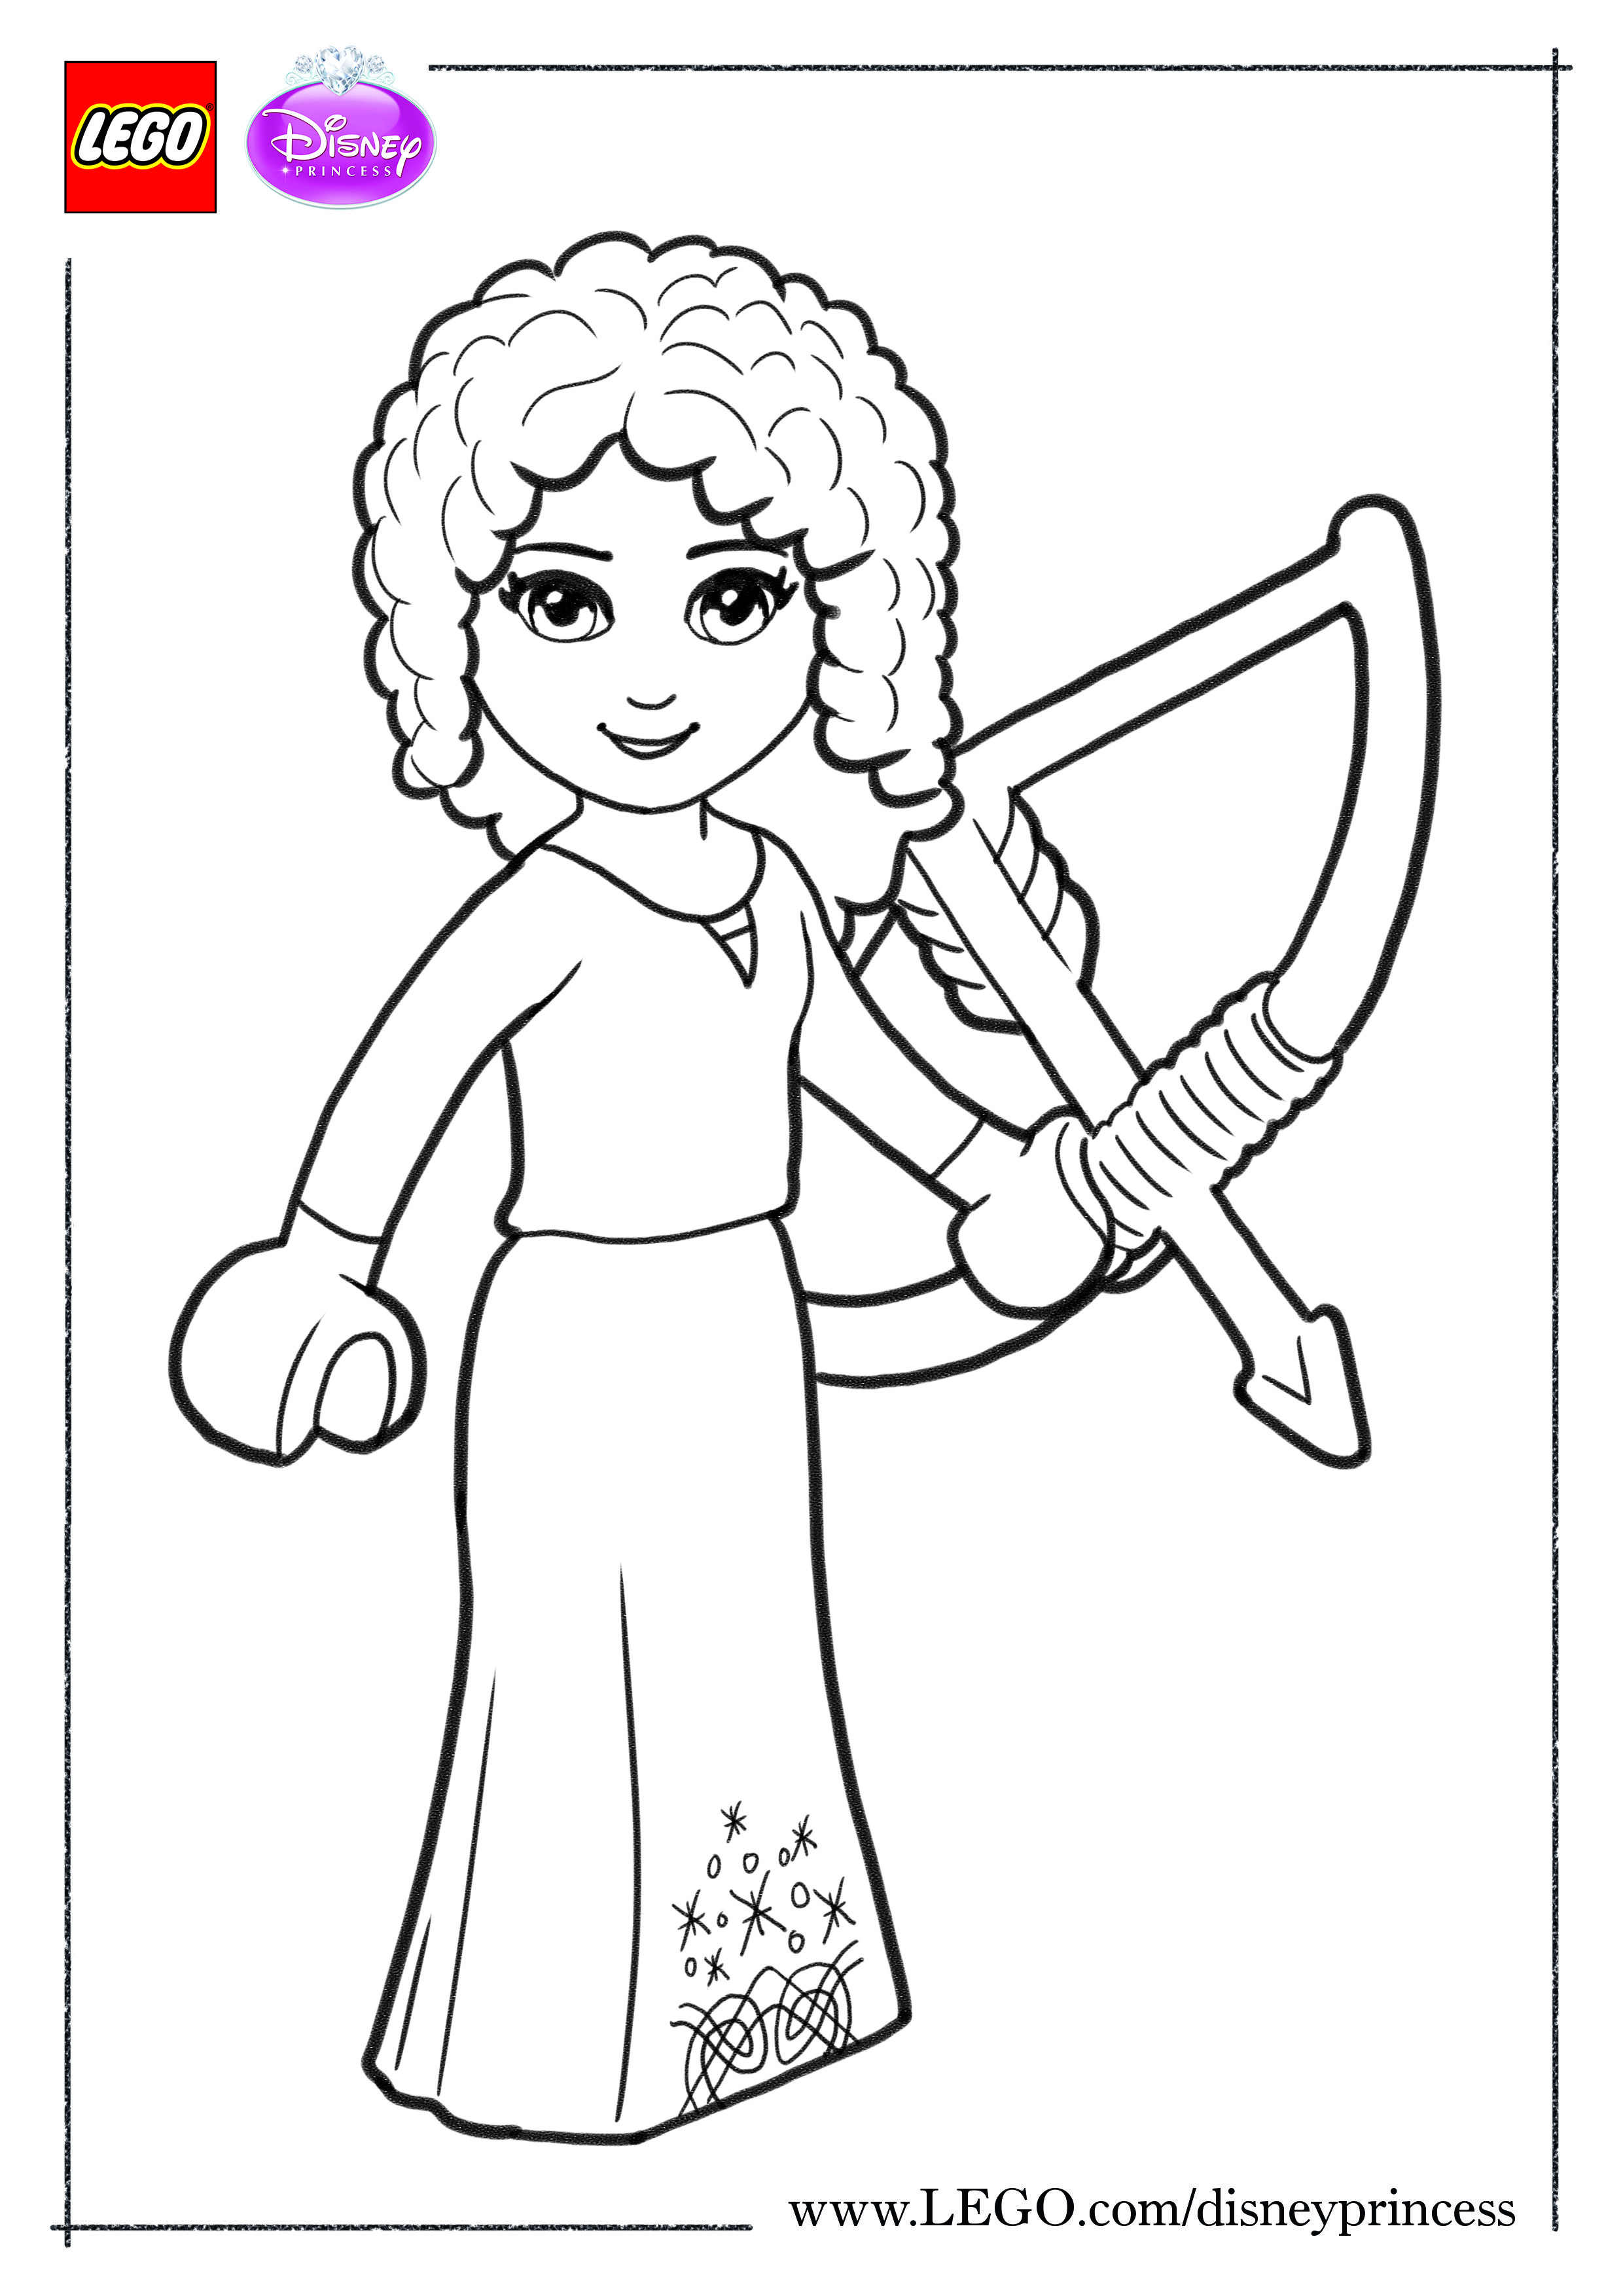 Print Out This Coloring Sheet And Give Merida A Little Color Coloringsheet Colouringshe Lego Coloring Pages Princess Coloring Pages Halloween Coloring Pages